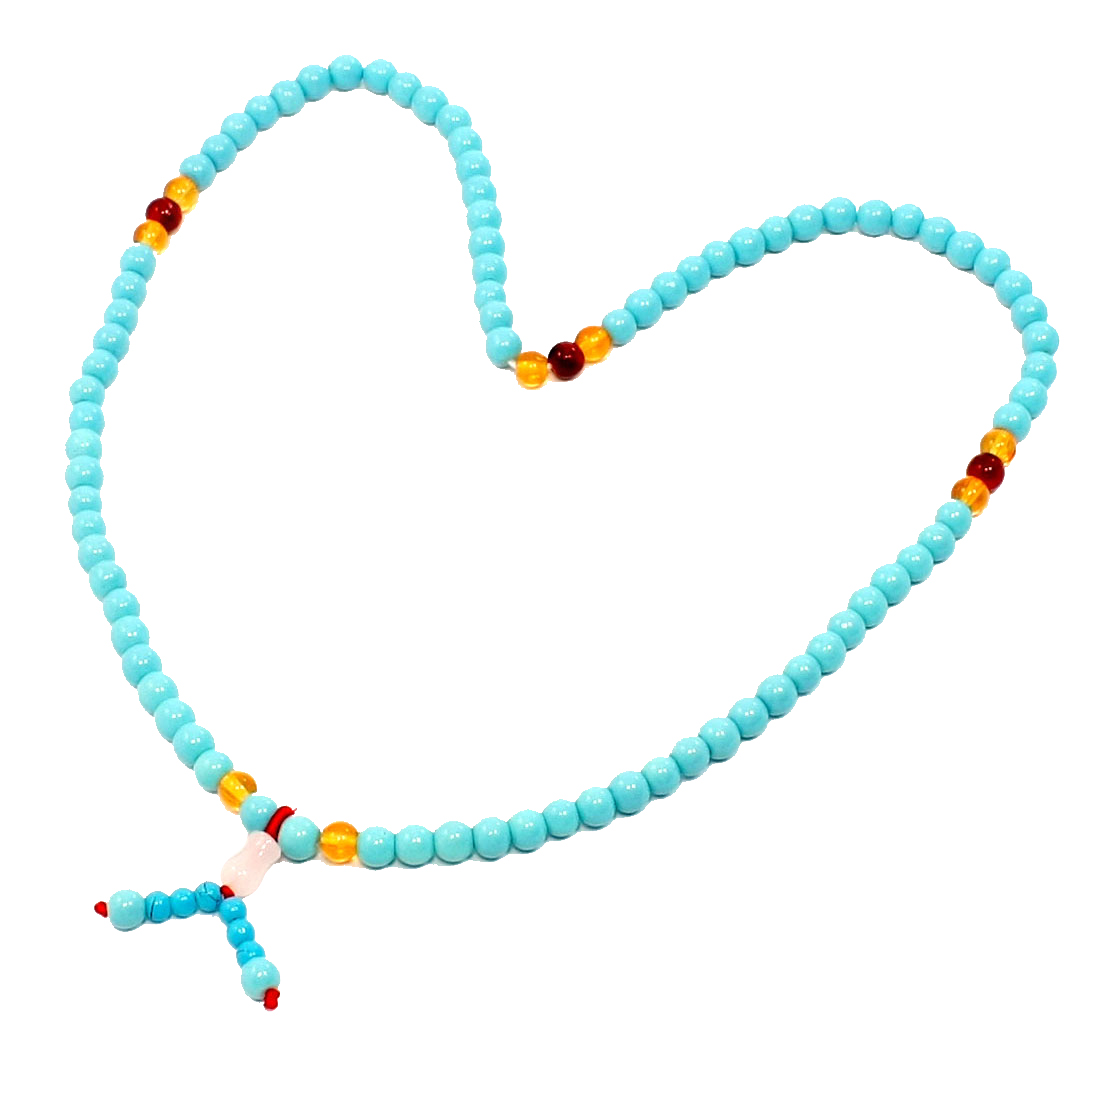 Light Blue Faux Jade Plastic Beads Decor Stretchy Necklace